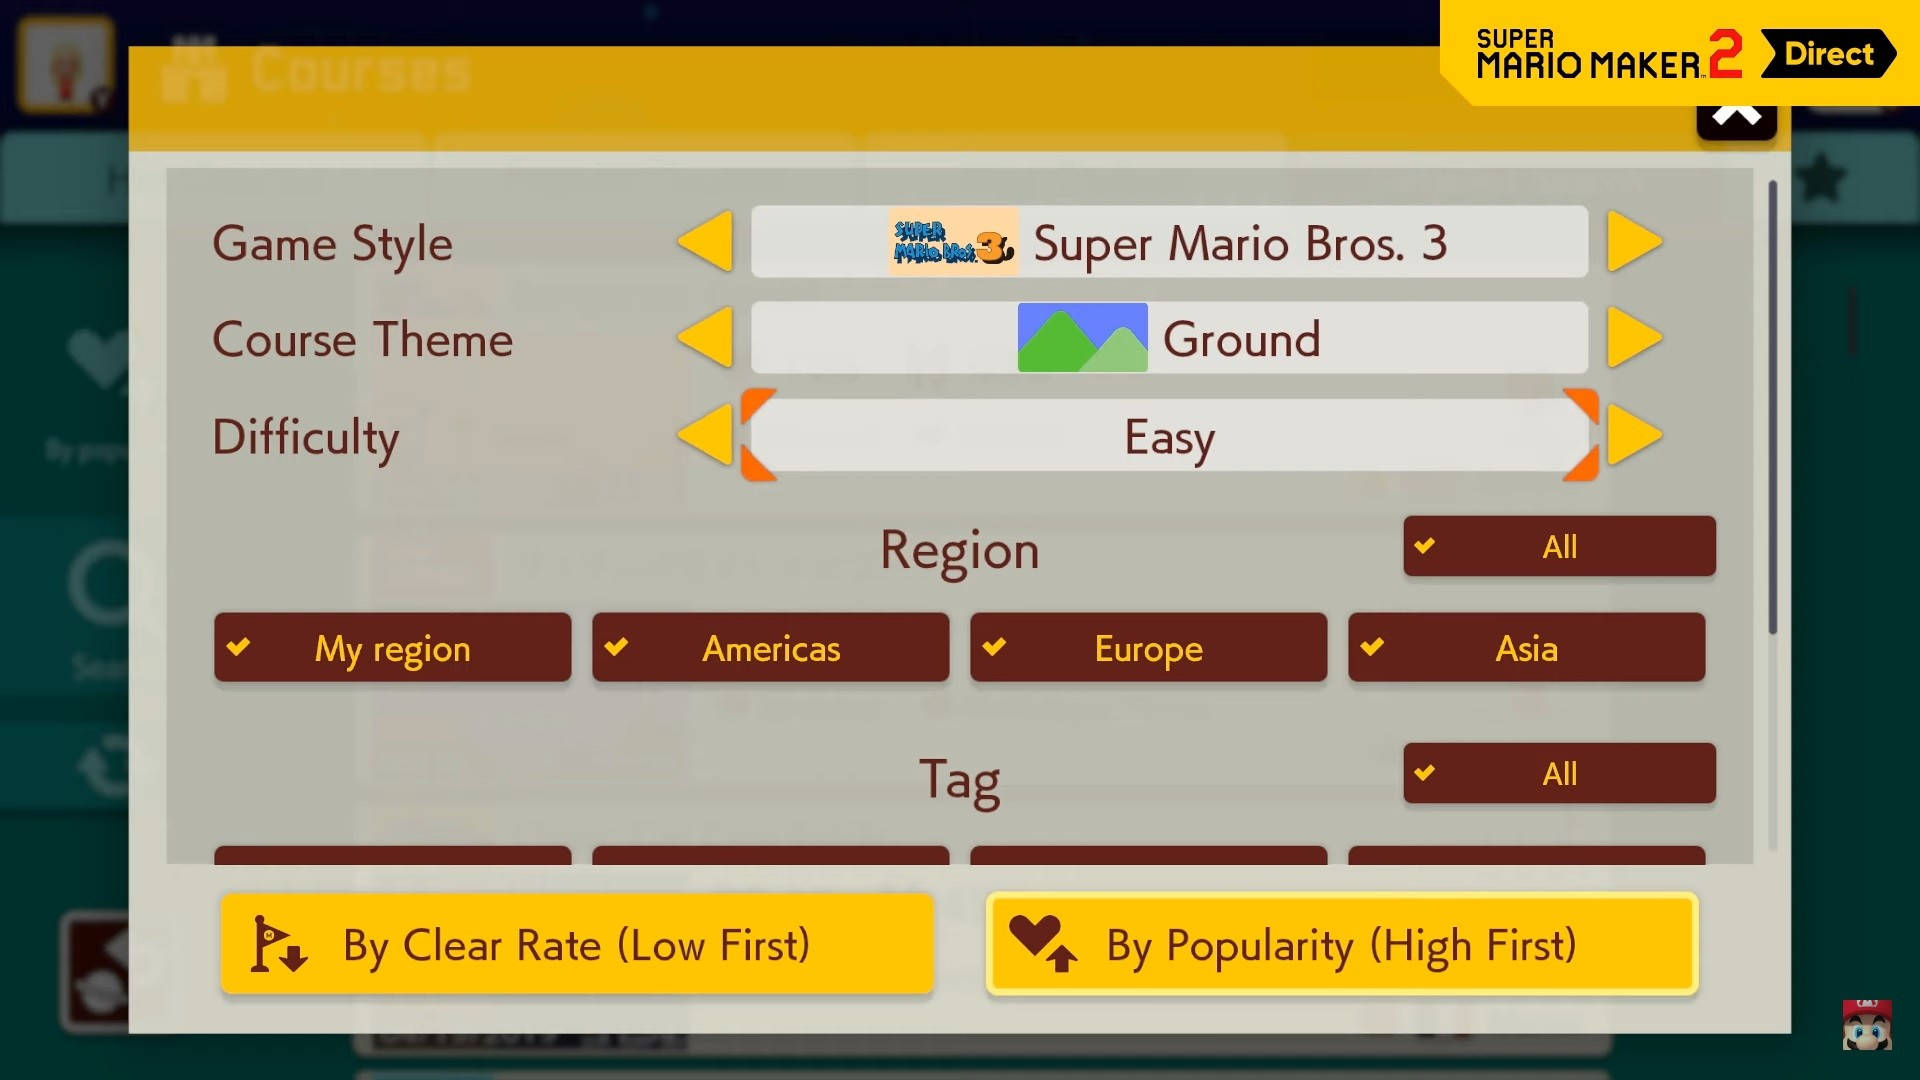 Nintendo reveals story mode and multiplayer support for Super Mario